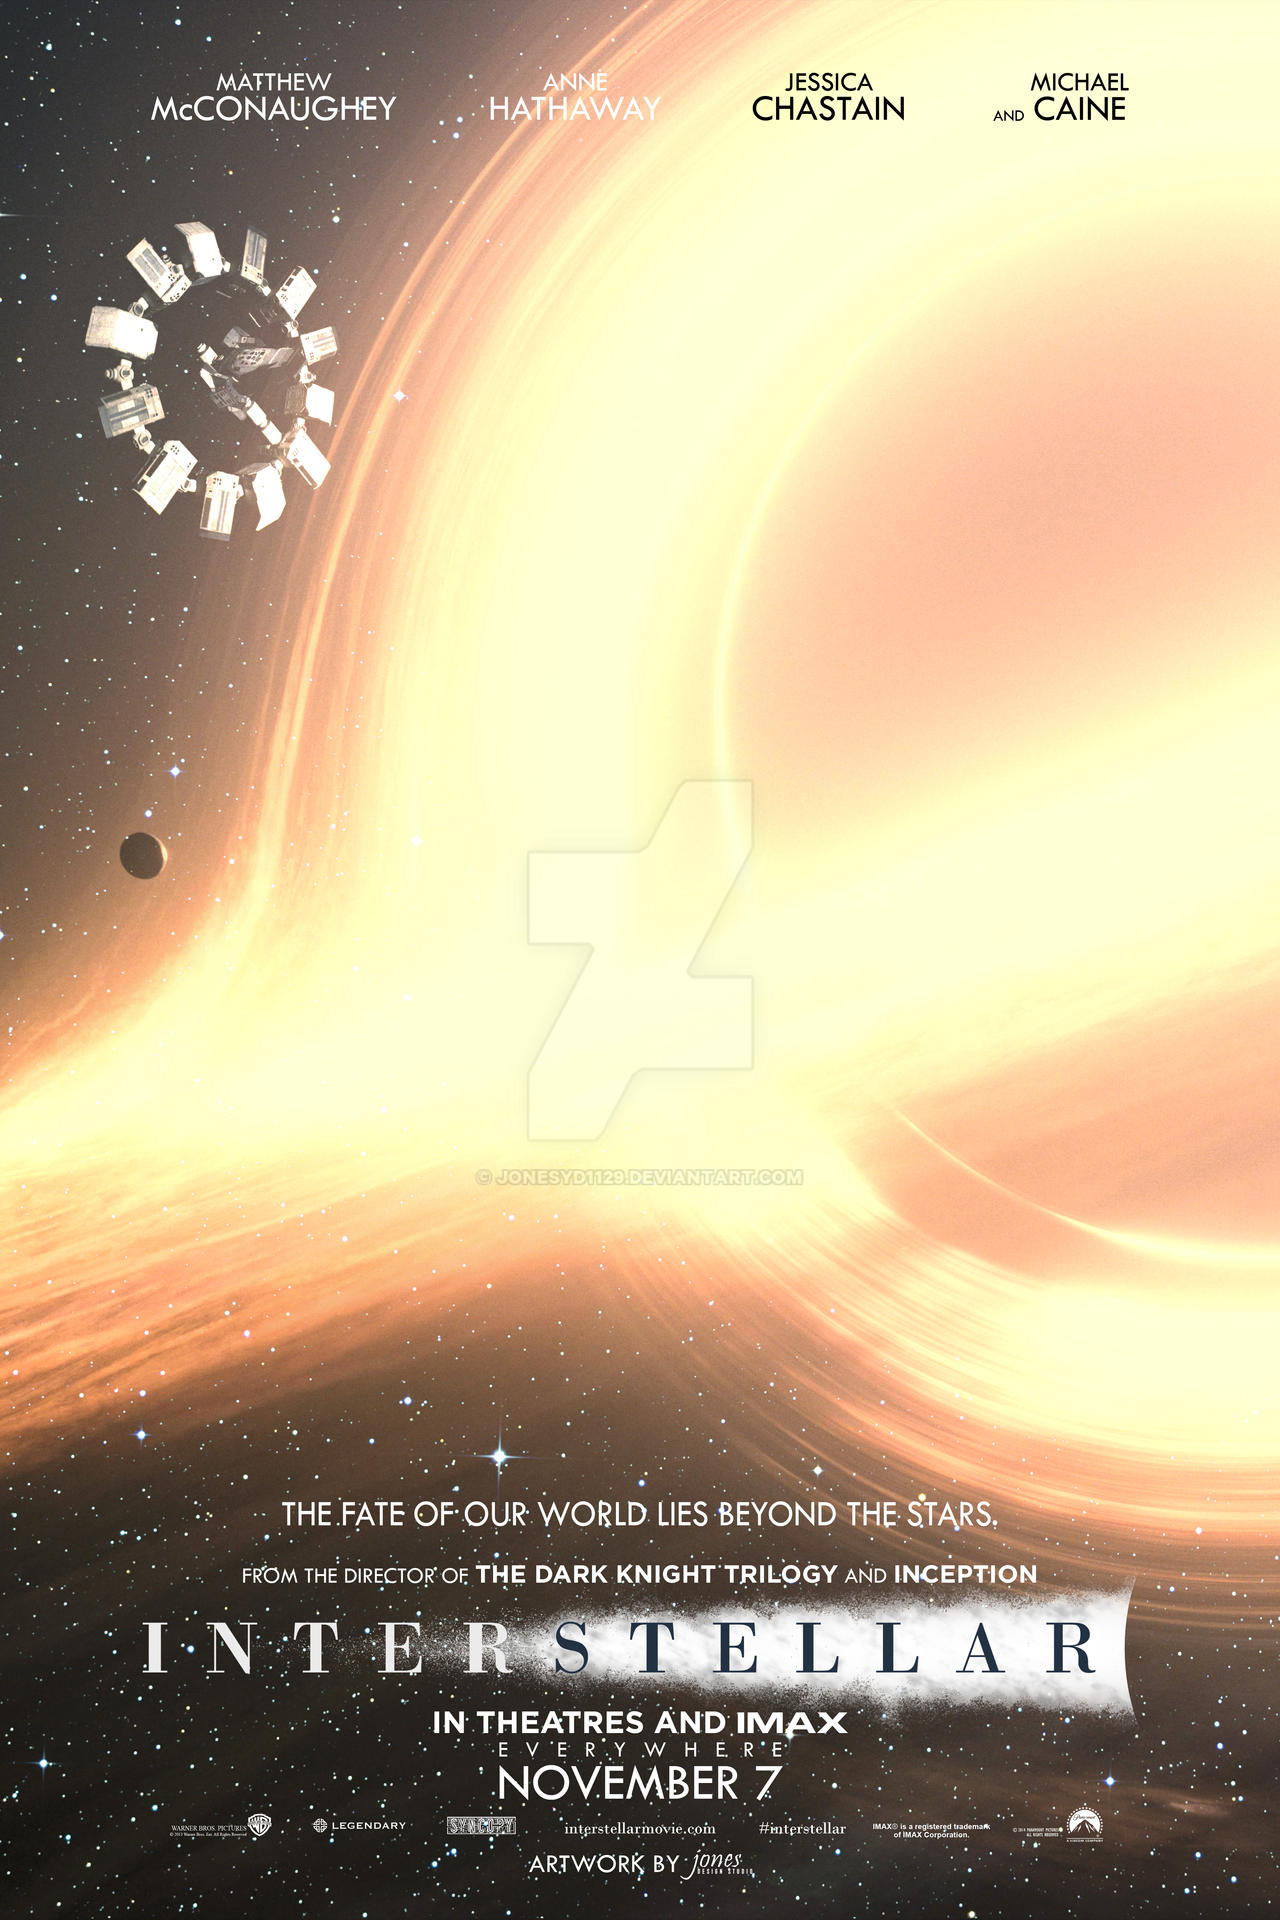 compare essay between inception interstellar essay A video essay on the use of time and conflict in christopher nolan's 2014 film interstellar done as a final assignment for cams 202 at wellesley college.